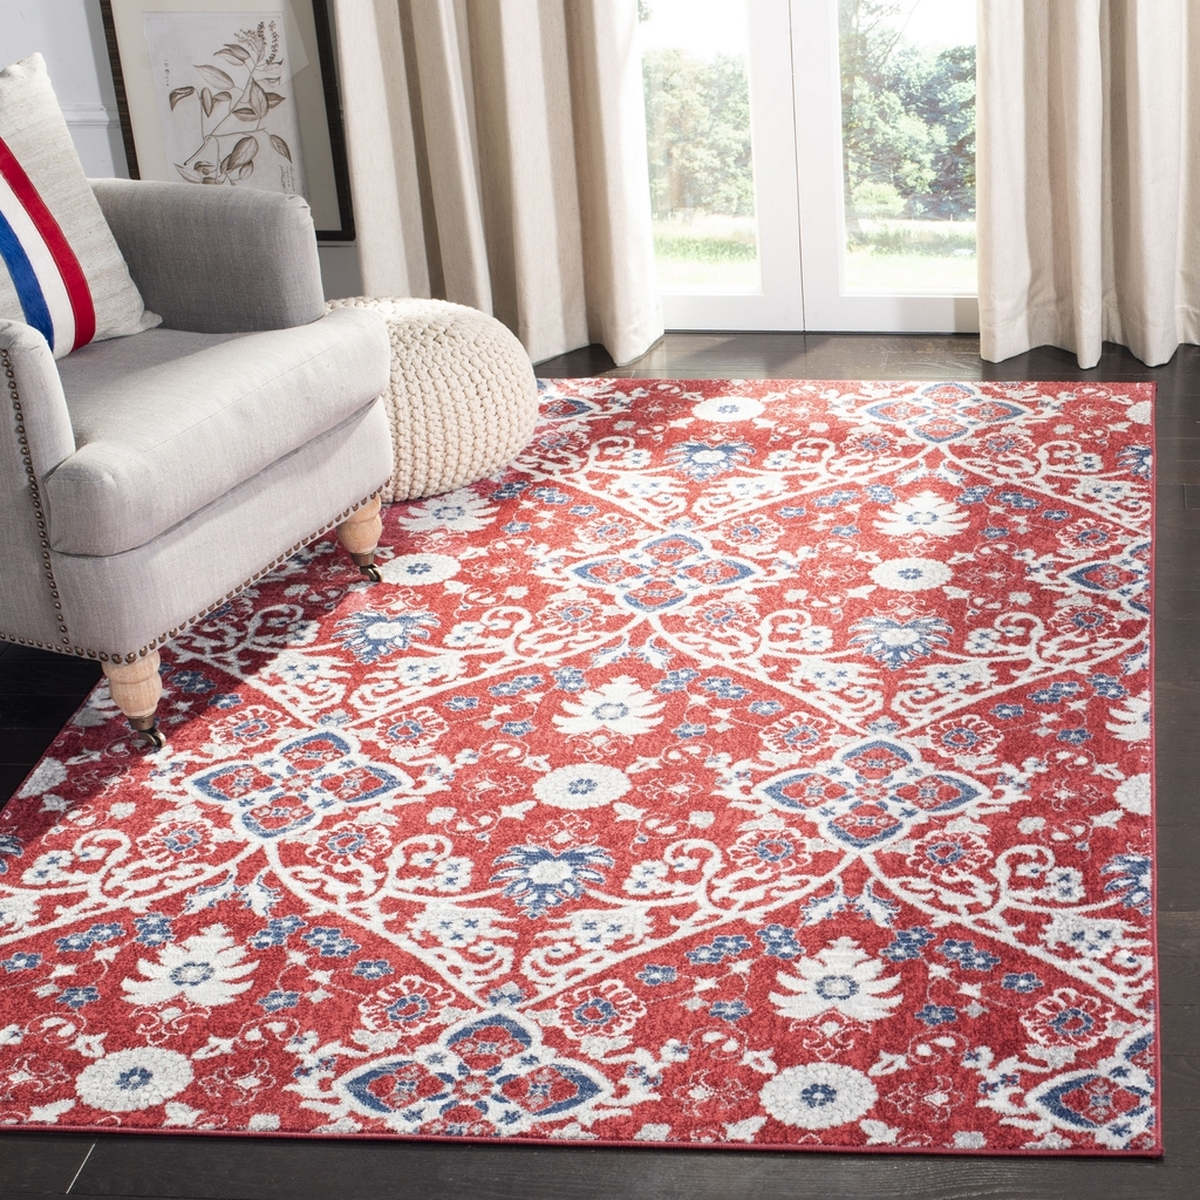 Rug Bnt894r Brentwood Area Rugs By Safavieh